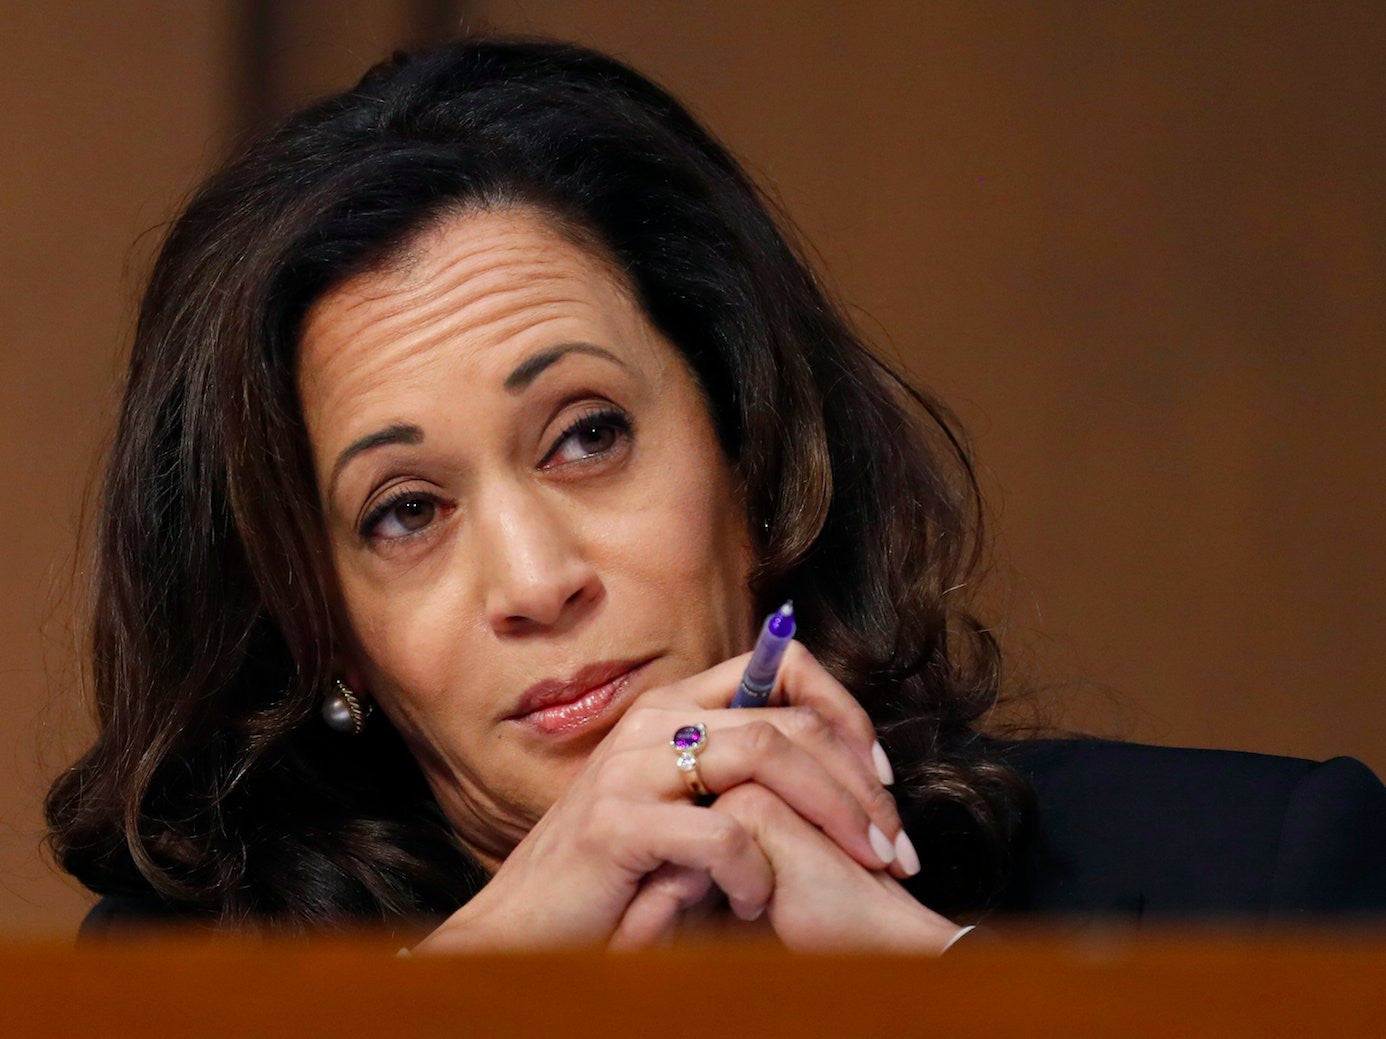 Kamala Harris, silenced again: #shepersisted